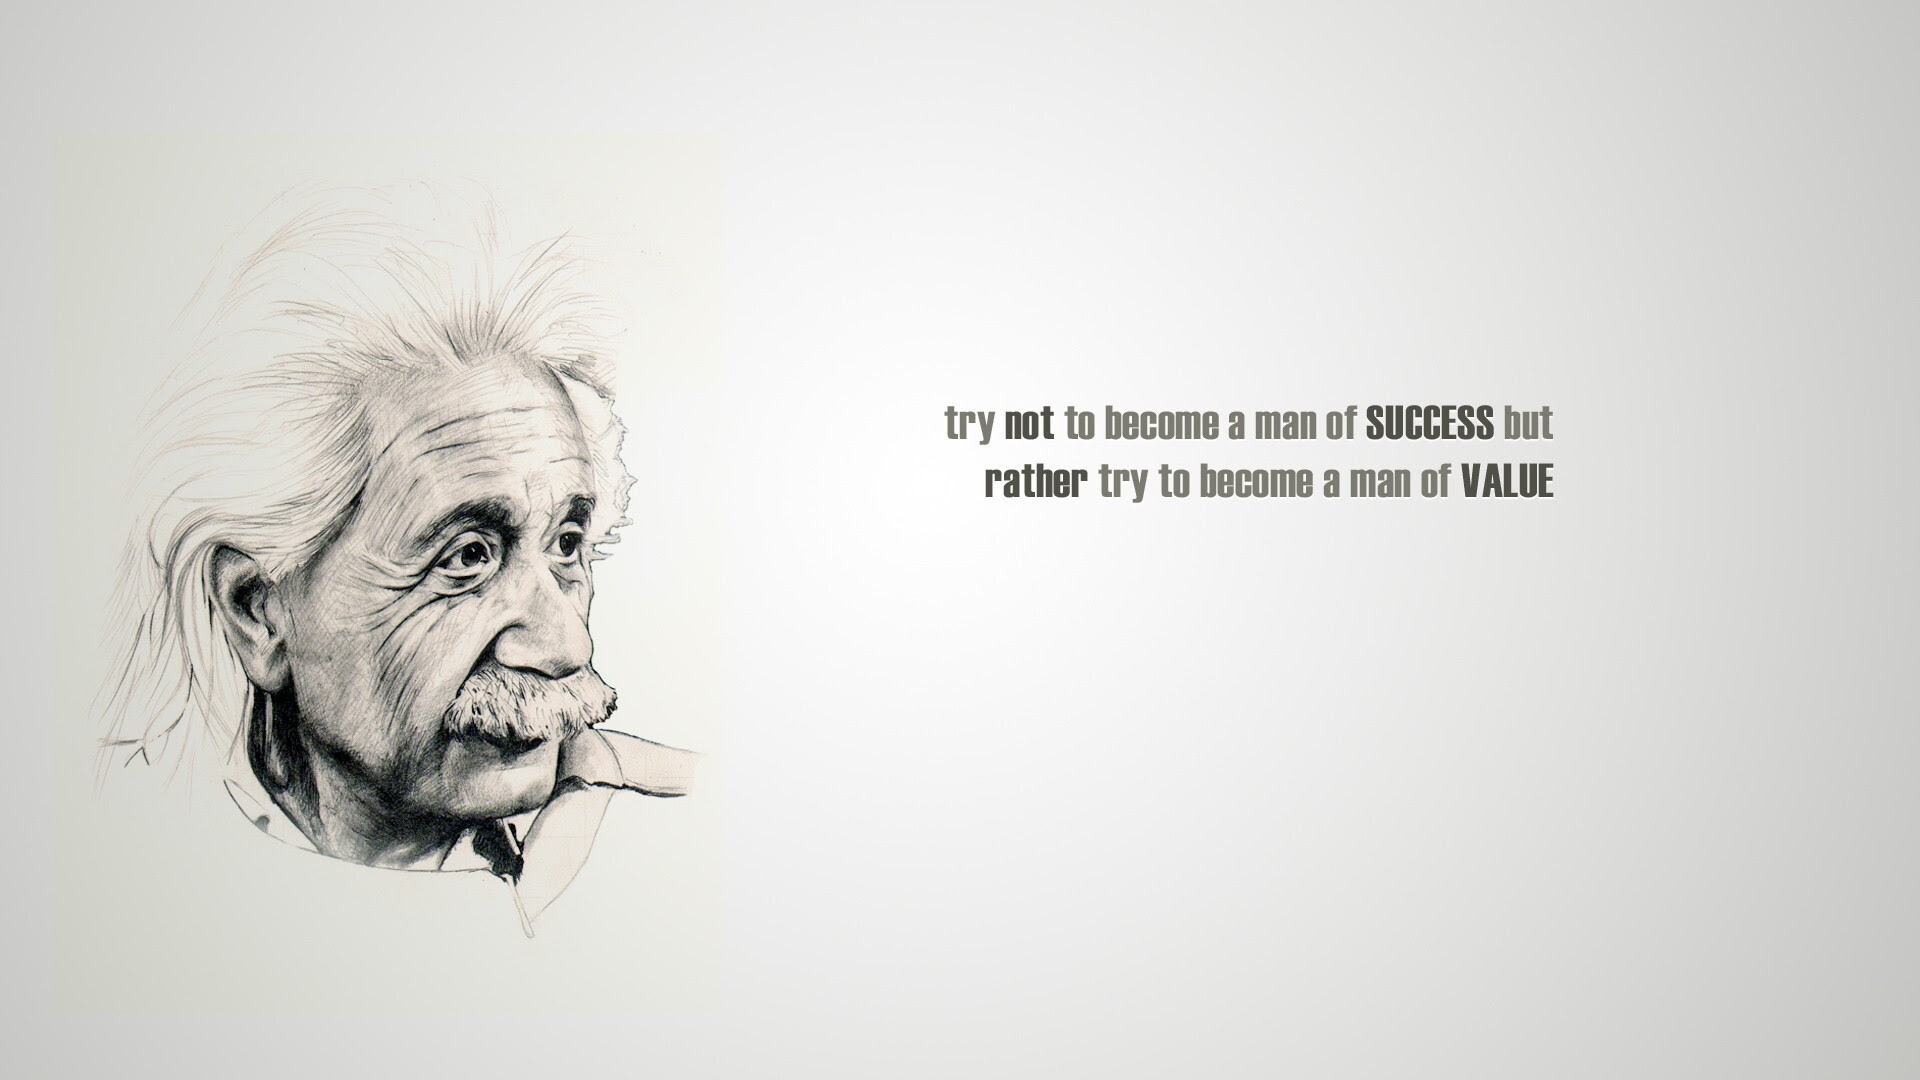 Albert Einstein Famous Quote On Success And Value Hd Wallpaper Hd